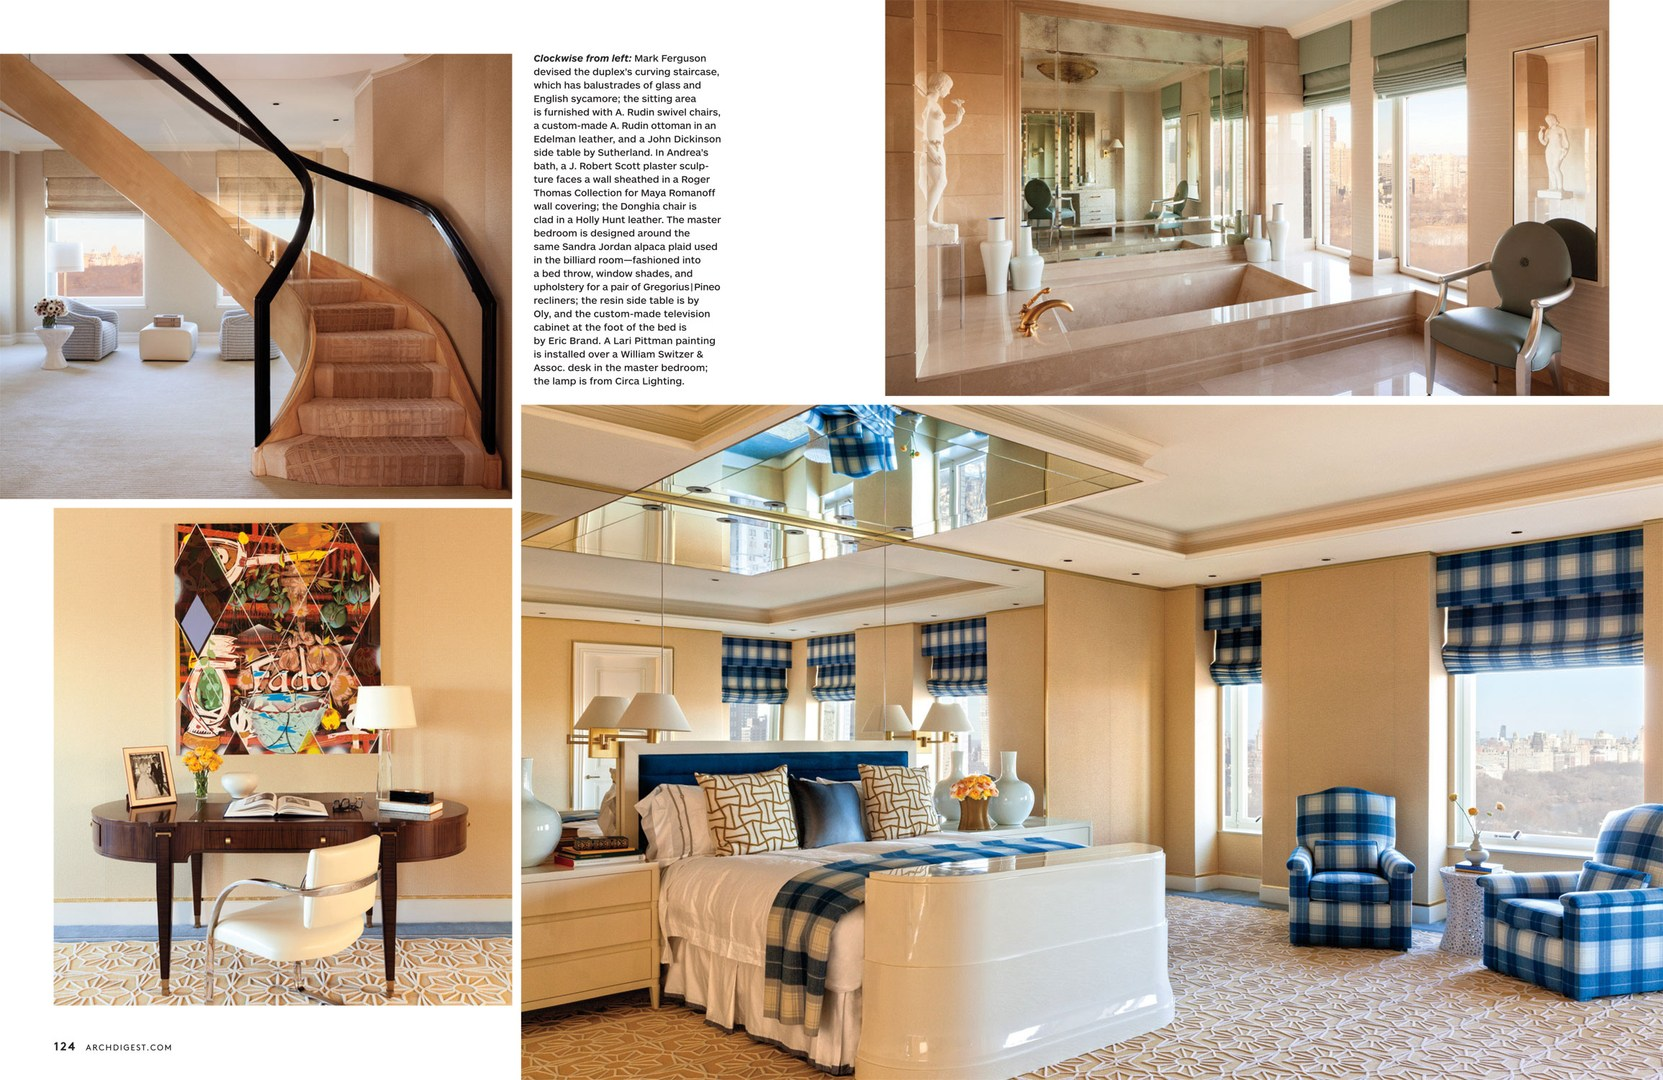 Full house architectural digest march 2014 interiors for Complete house interior design